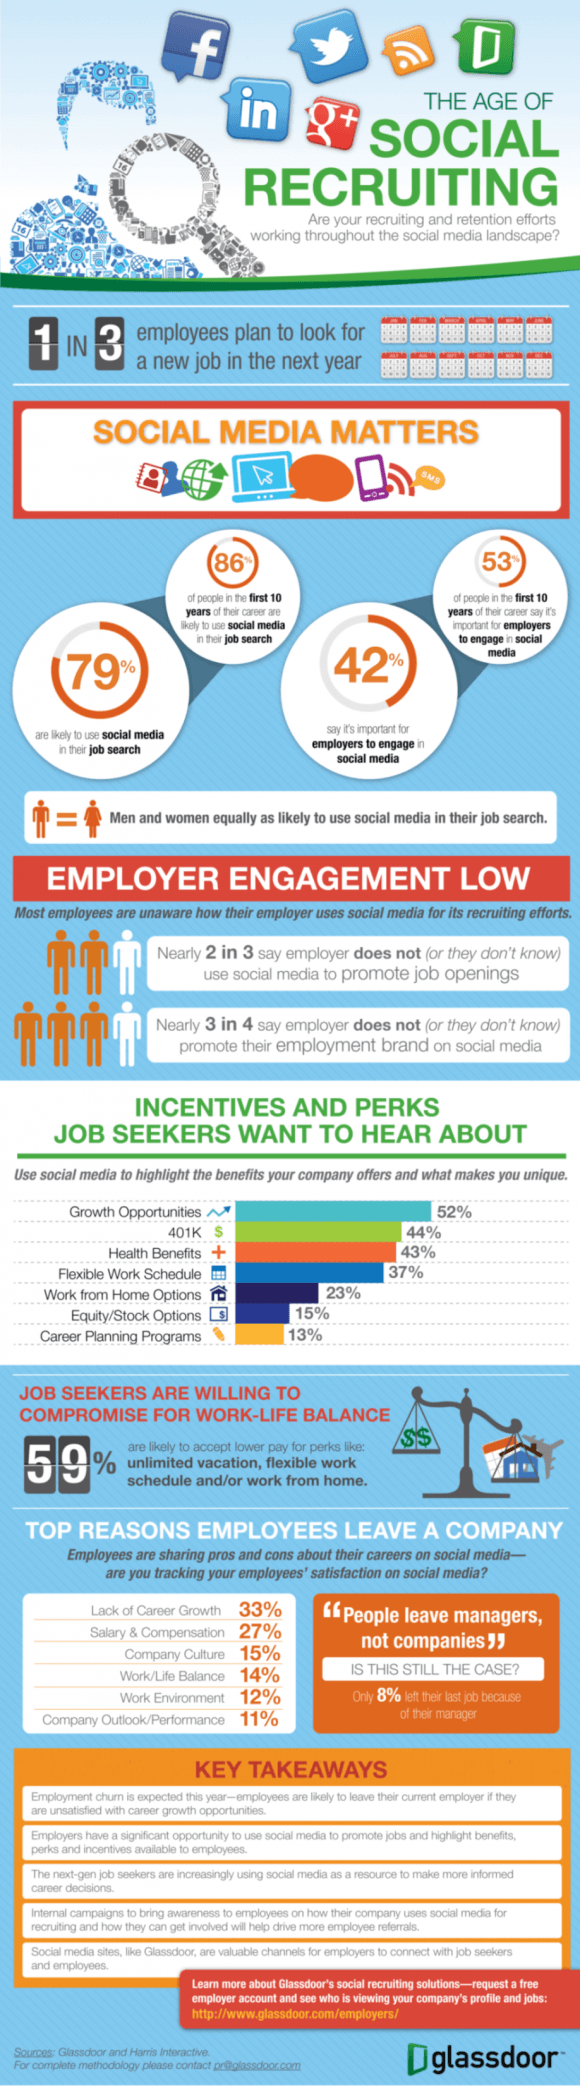 Glassdoor - Age of Social Recruiting Infographic